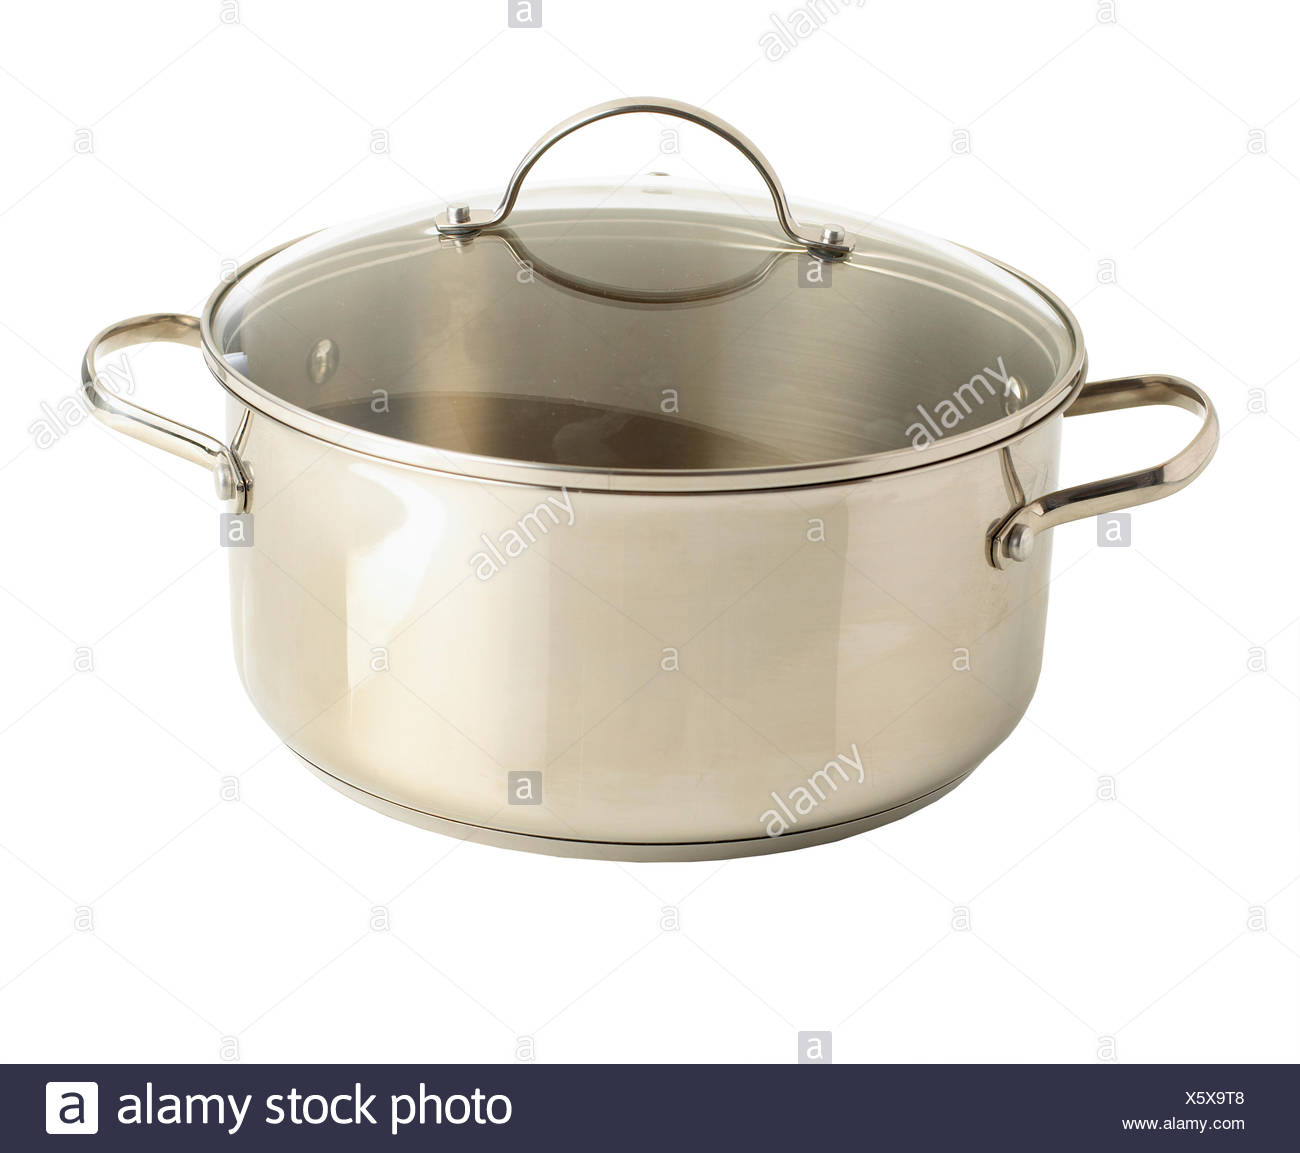 Stock pot with glass lid - Stock Image